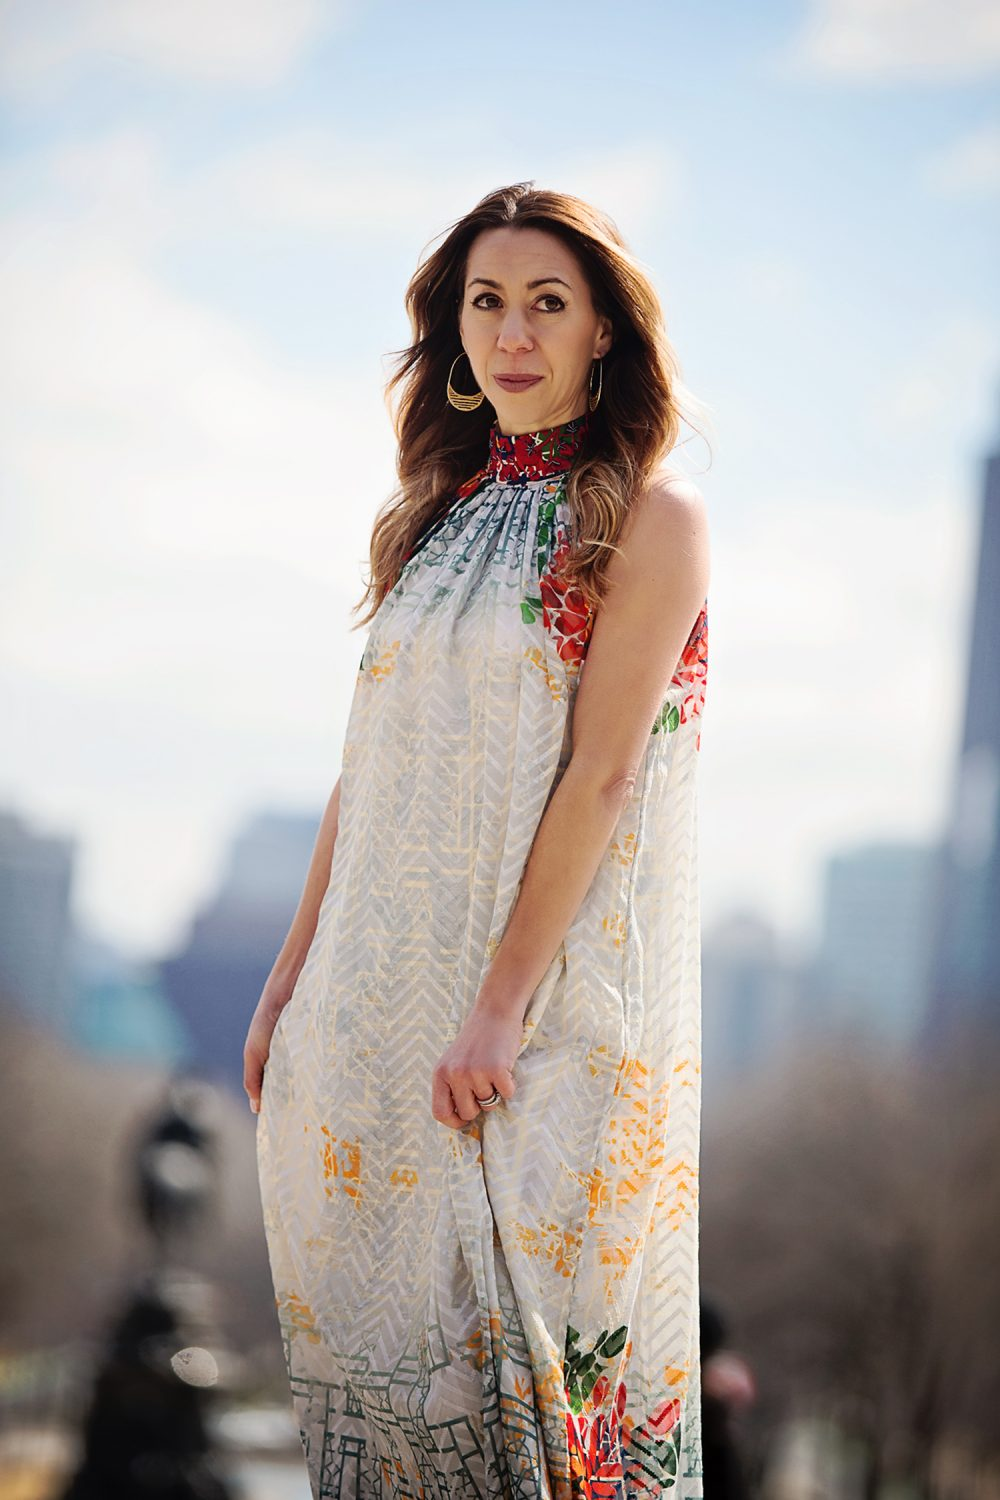 The Motherchic wearing Marilla maxi dress